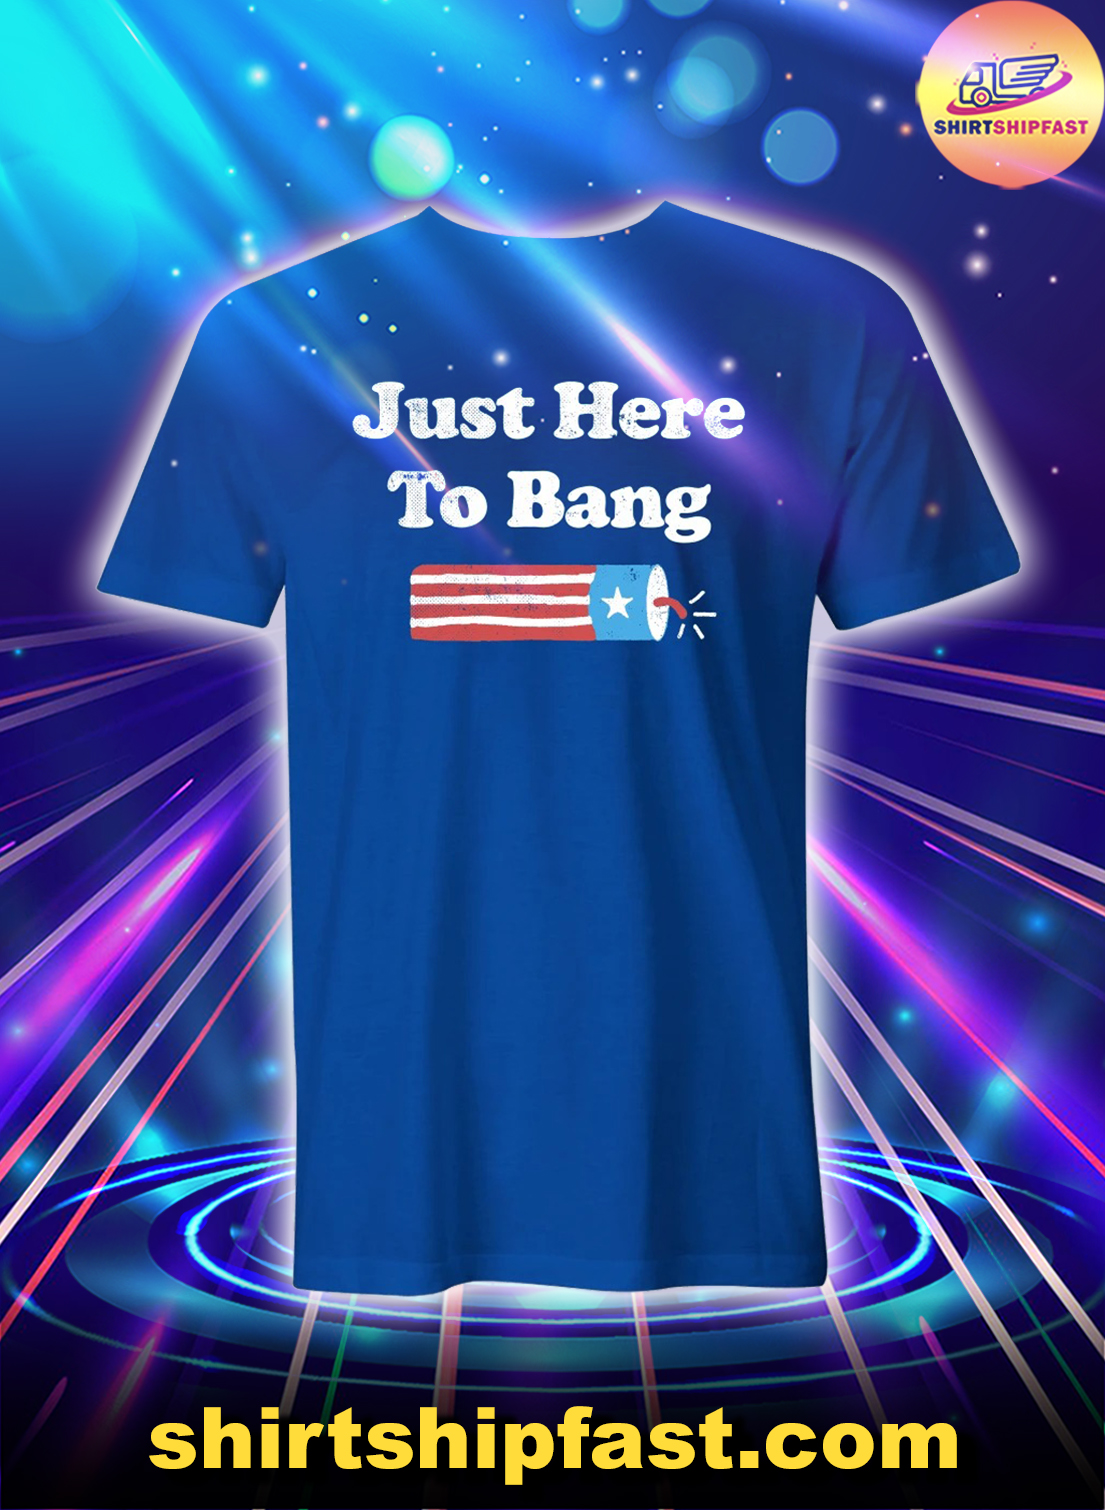 Just here to bang 4th of july shirt - Blue